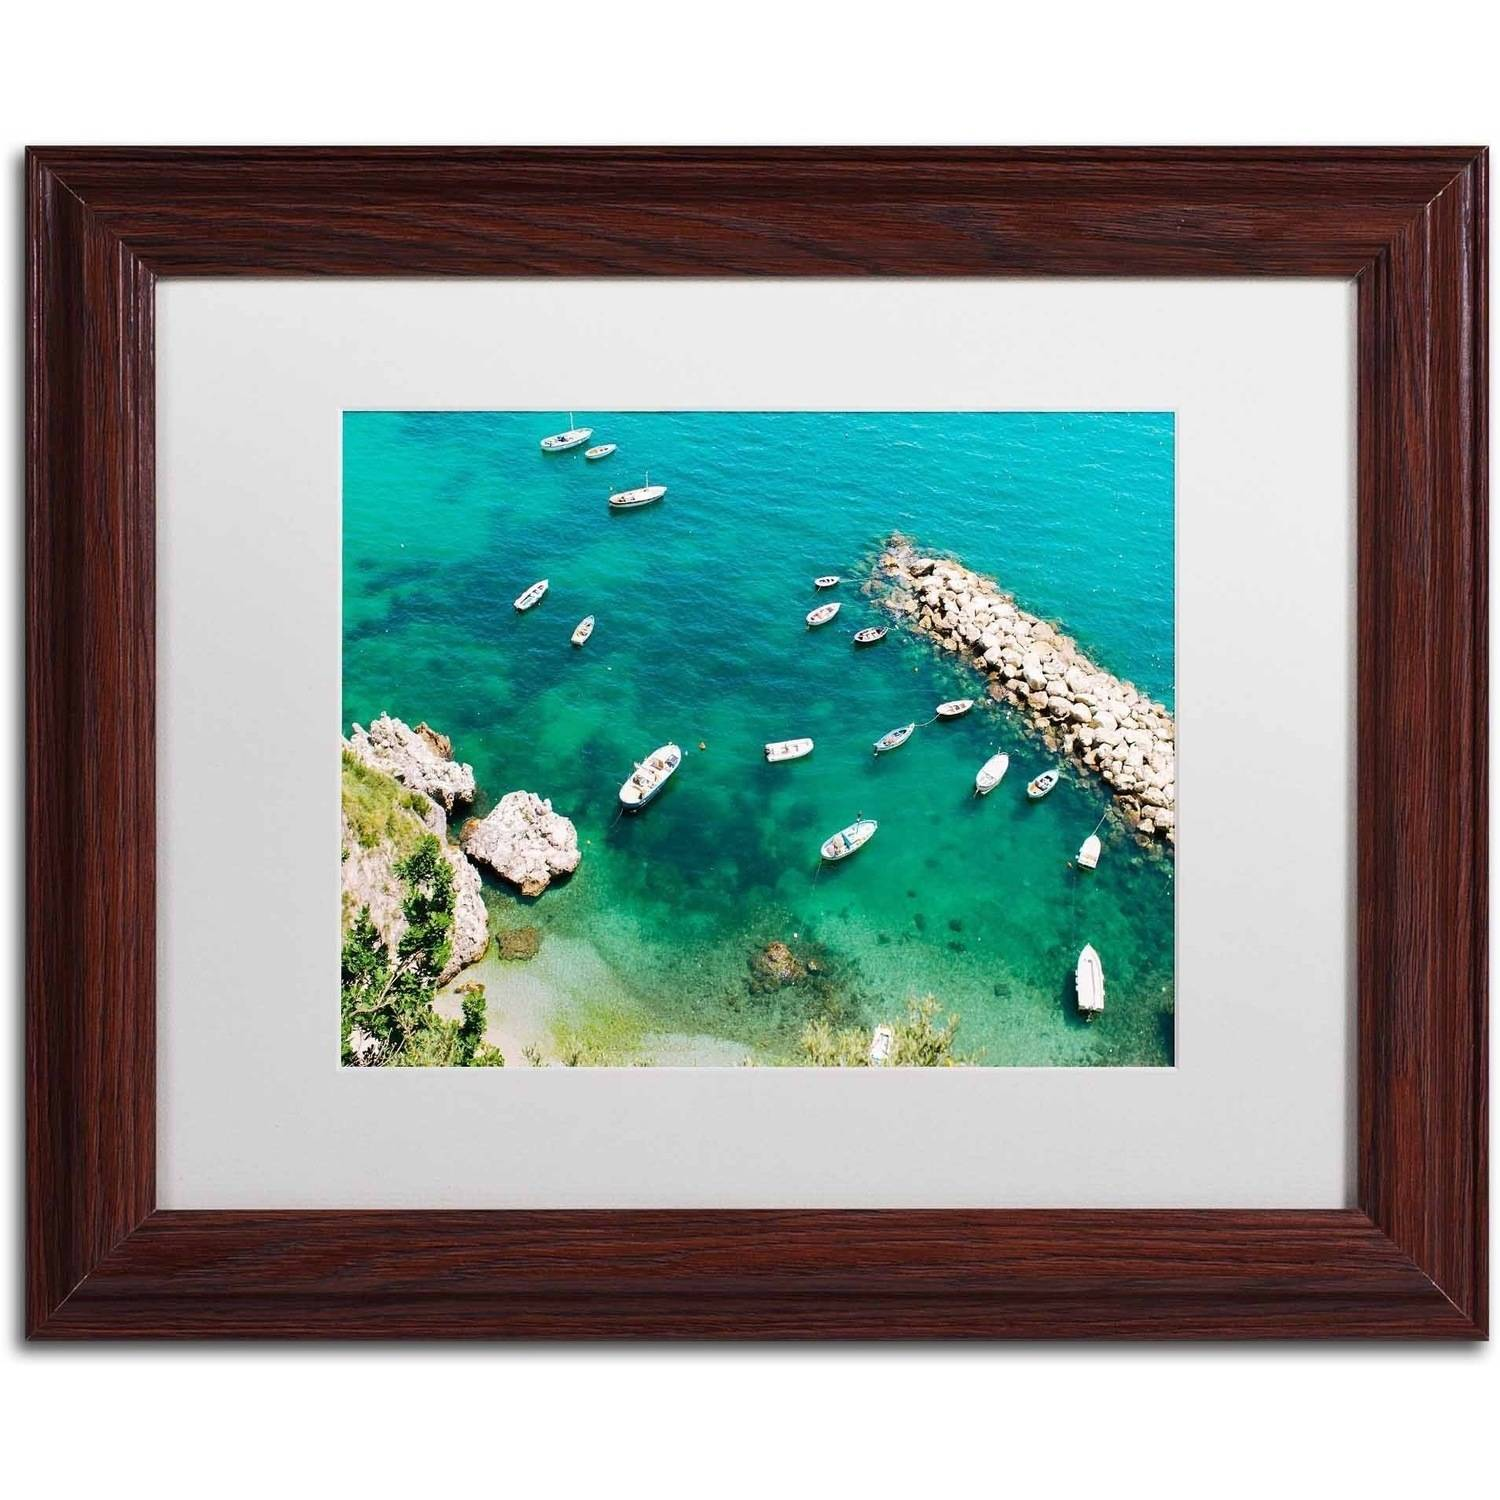 Trademark Fine Art 'Italian Docks' Canvas Art by Ariane Moshayedi, White Matte, Wood Frame